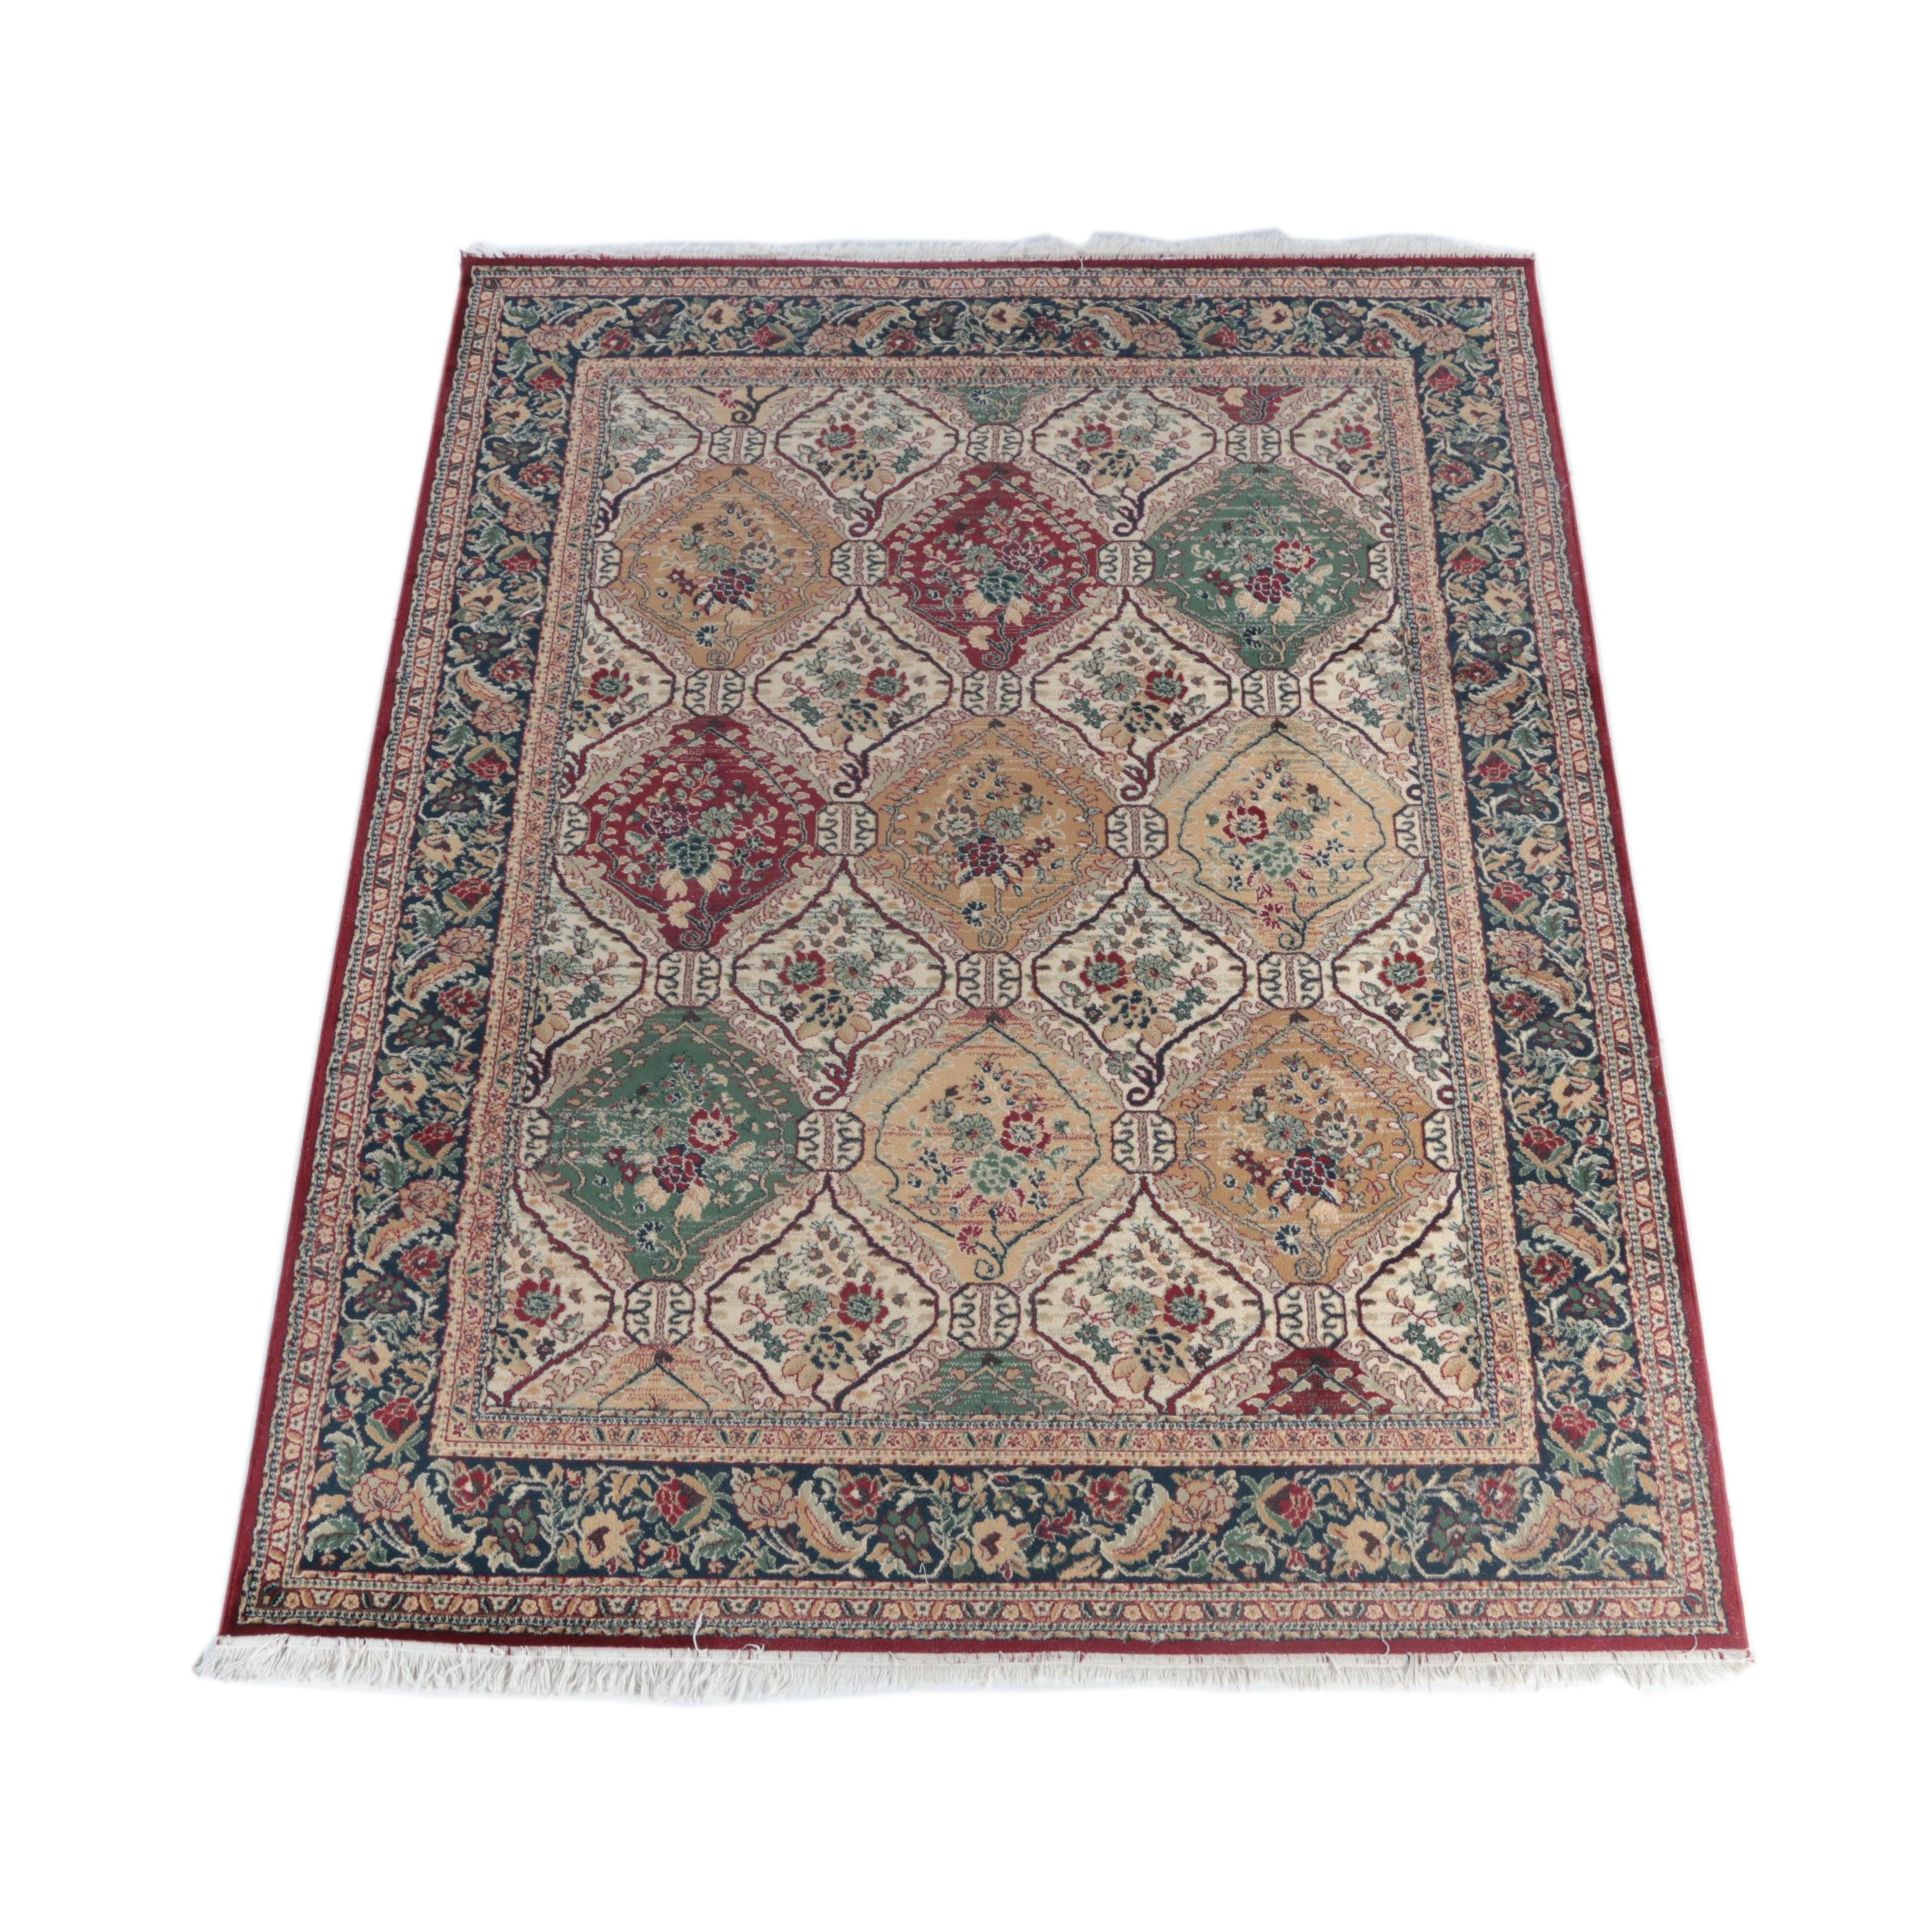 Machine Made Persian Style Area Rug by Caspian